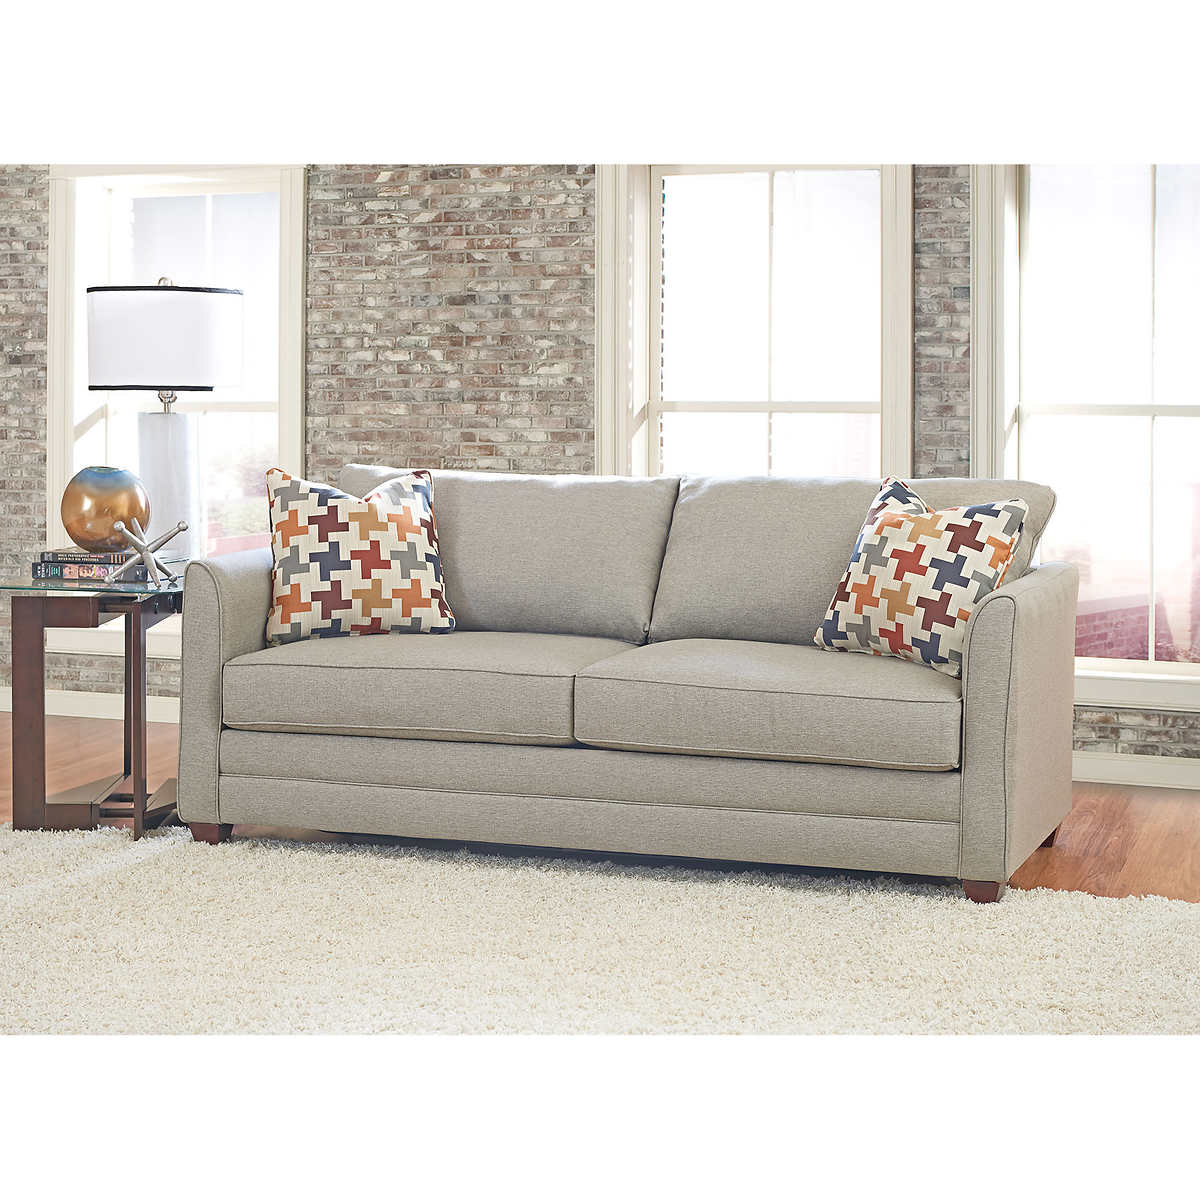 Sofa Sleeper Costco: Costco Sleeper Sofas Tilden Fabric Queen Sleeper Sofa